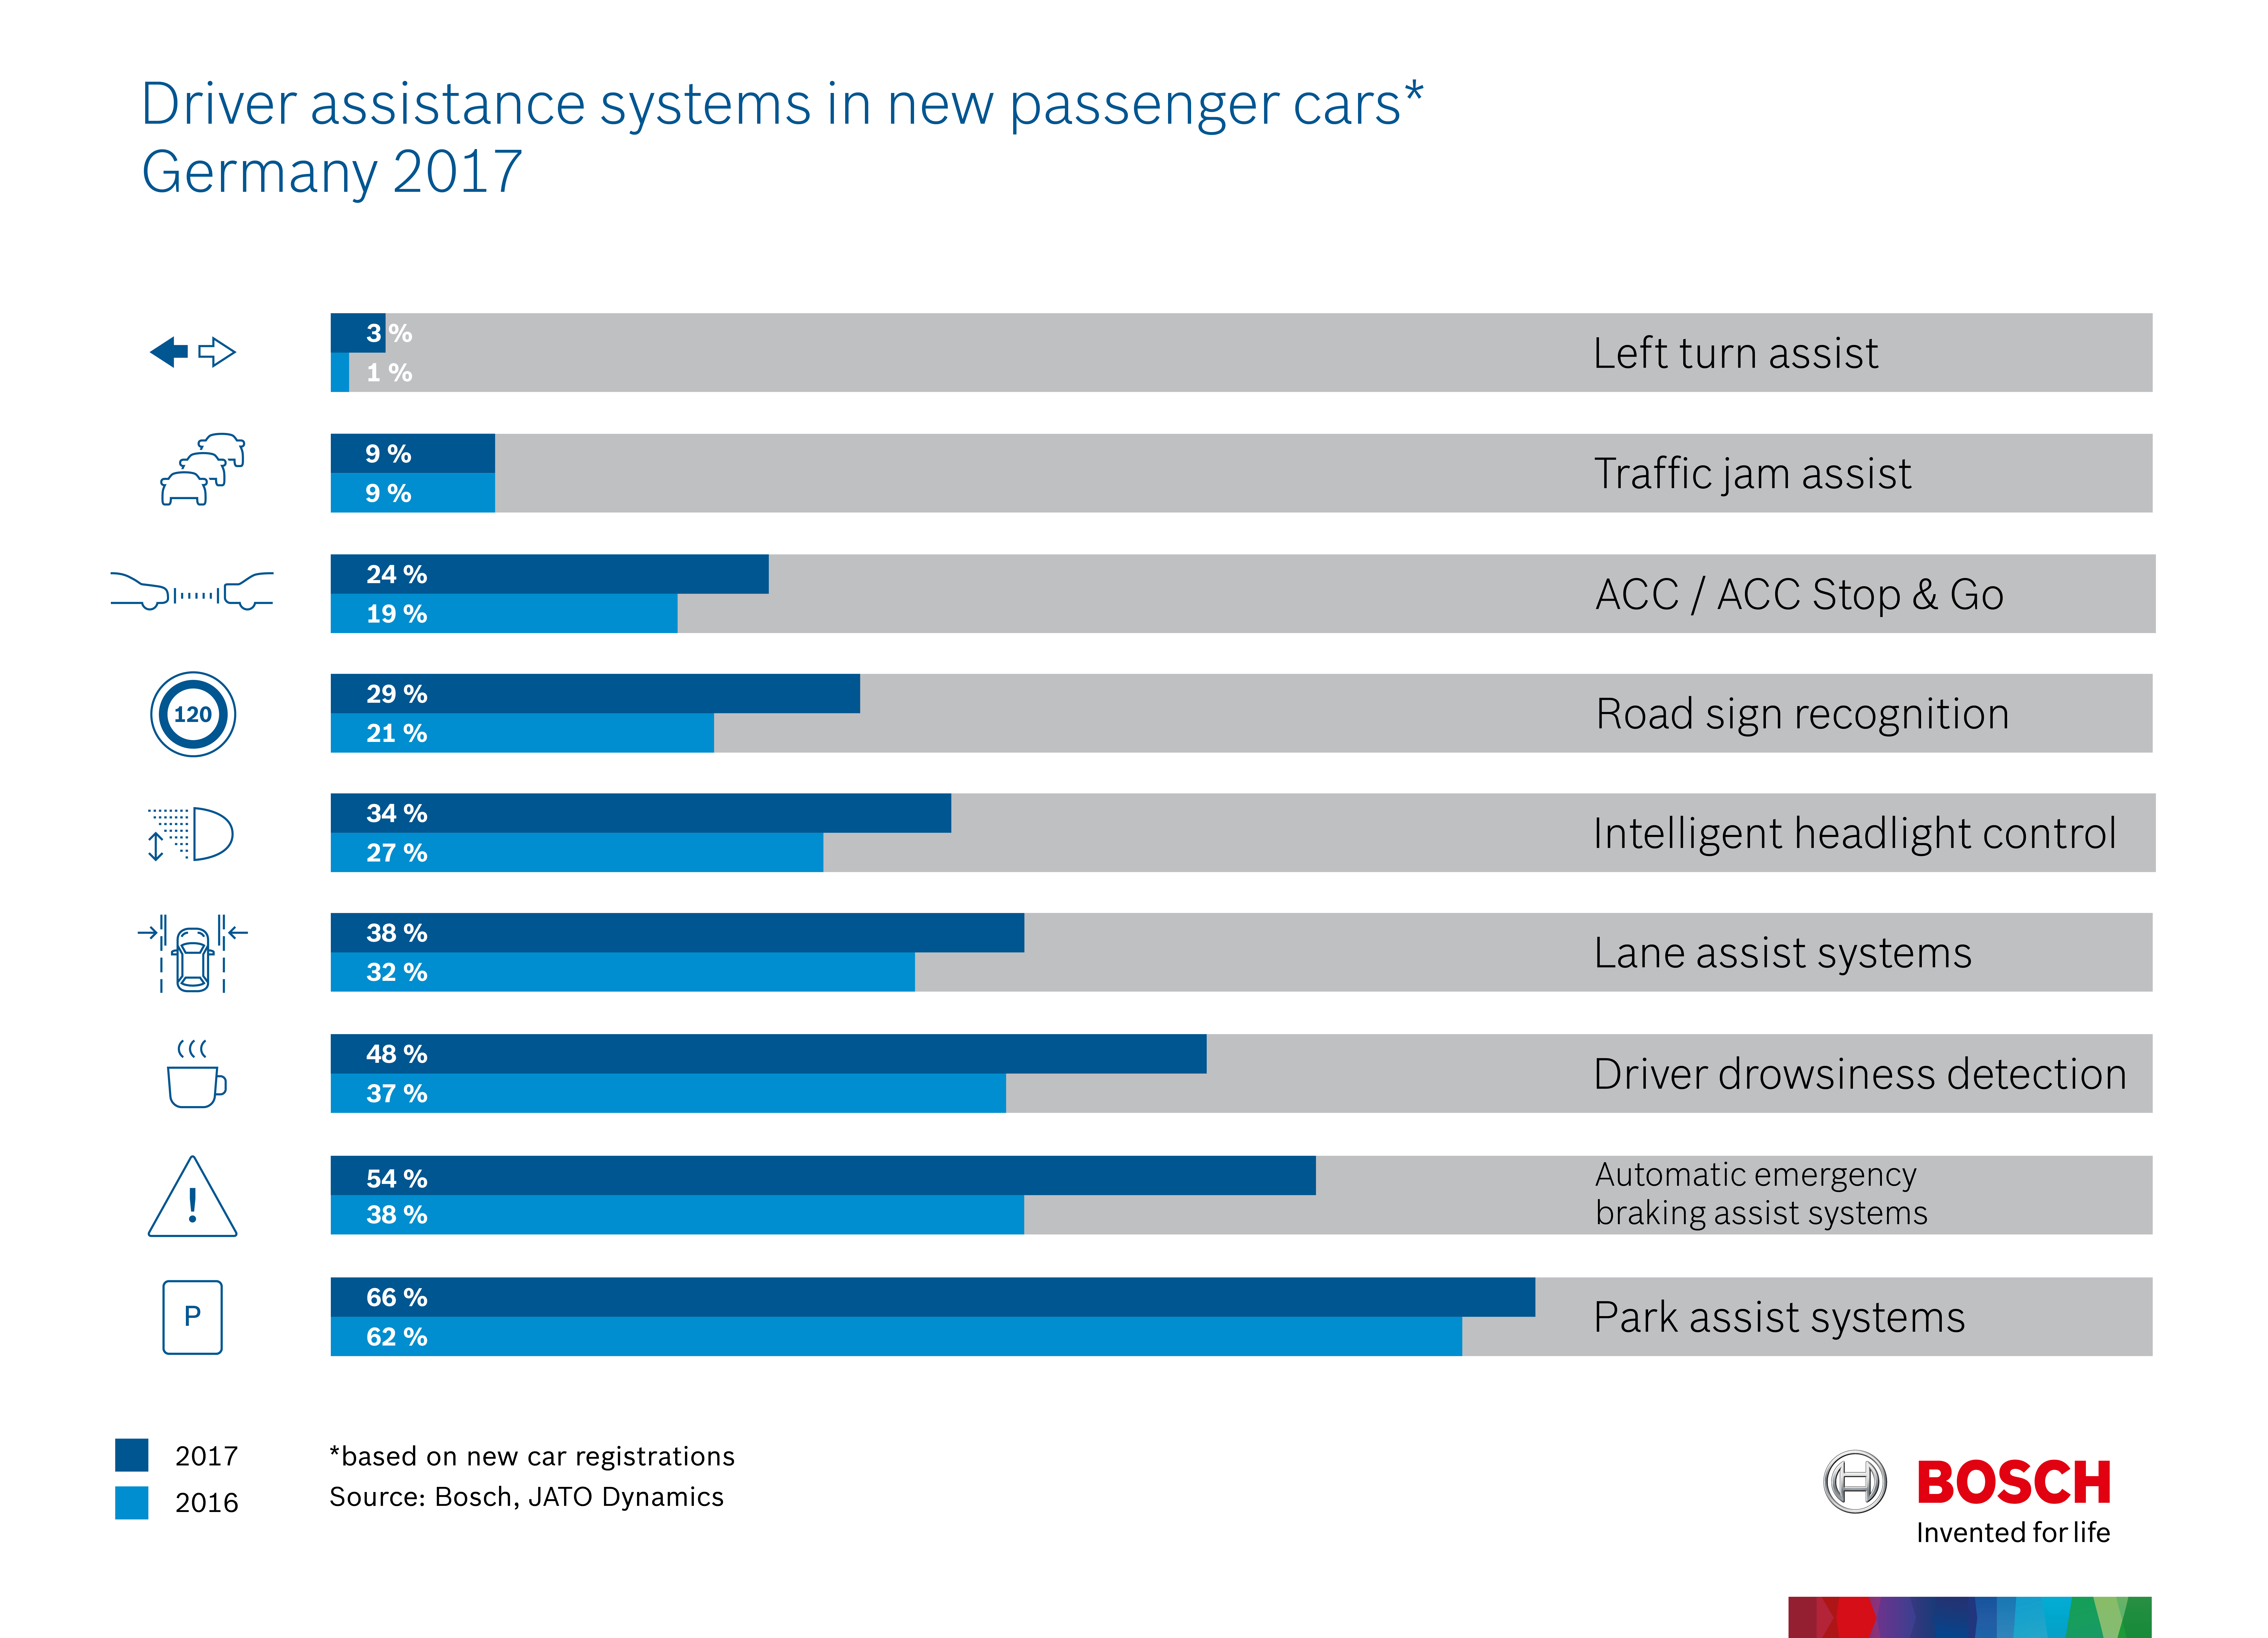 Driver assistance systems in new passenger cars, Germany 2017